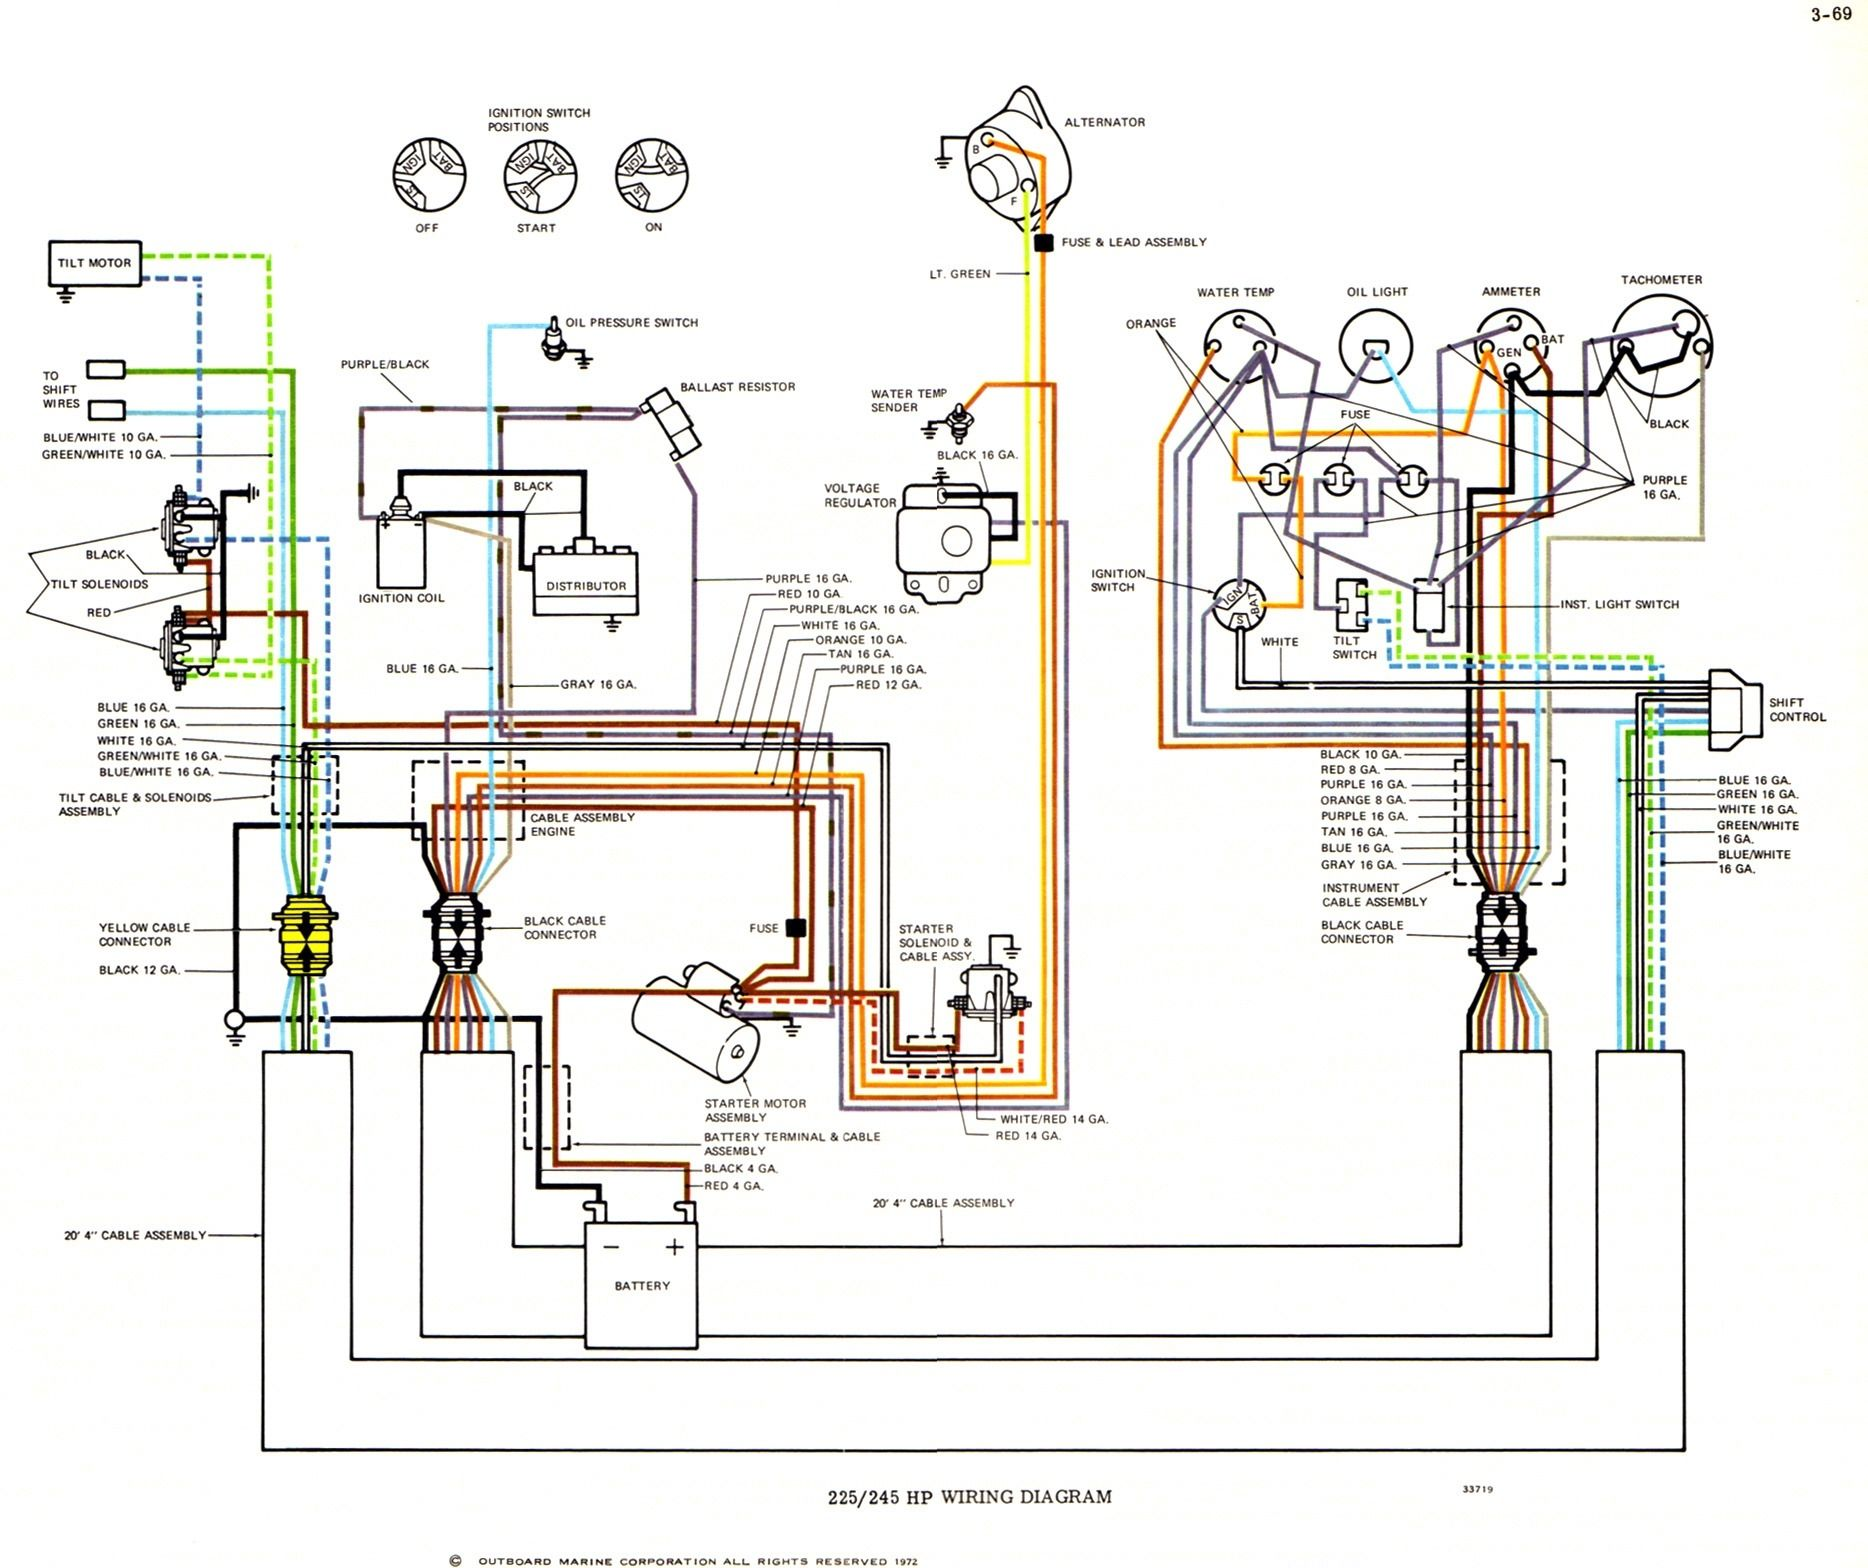 yamaha outboard electrical wiring diagram wiringdiagram org yamaha boat ignition wiring diagram yamaha boat wiring diagram [ 1868 x 1568 Pixel ]